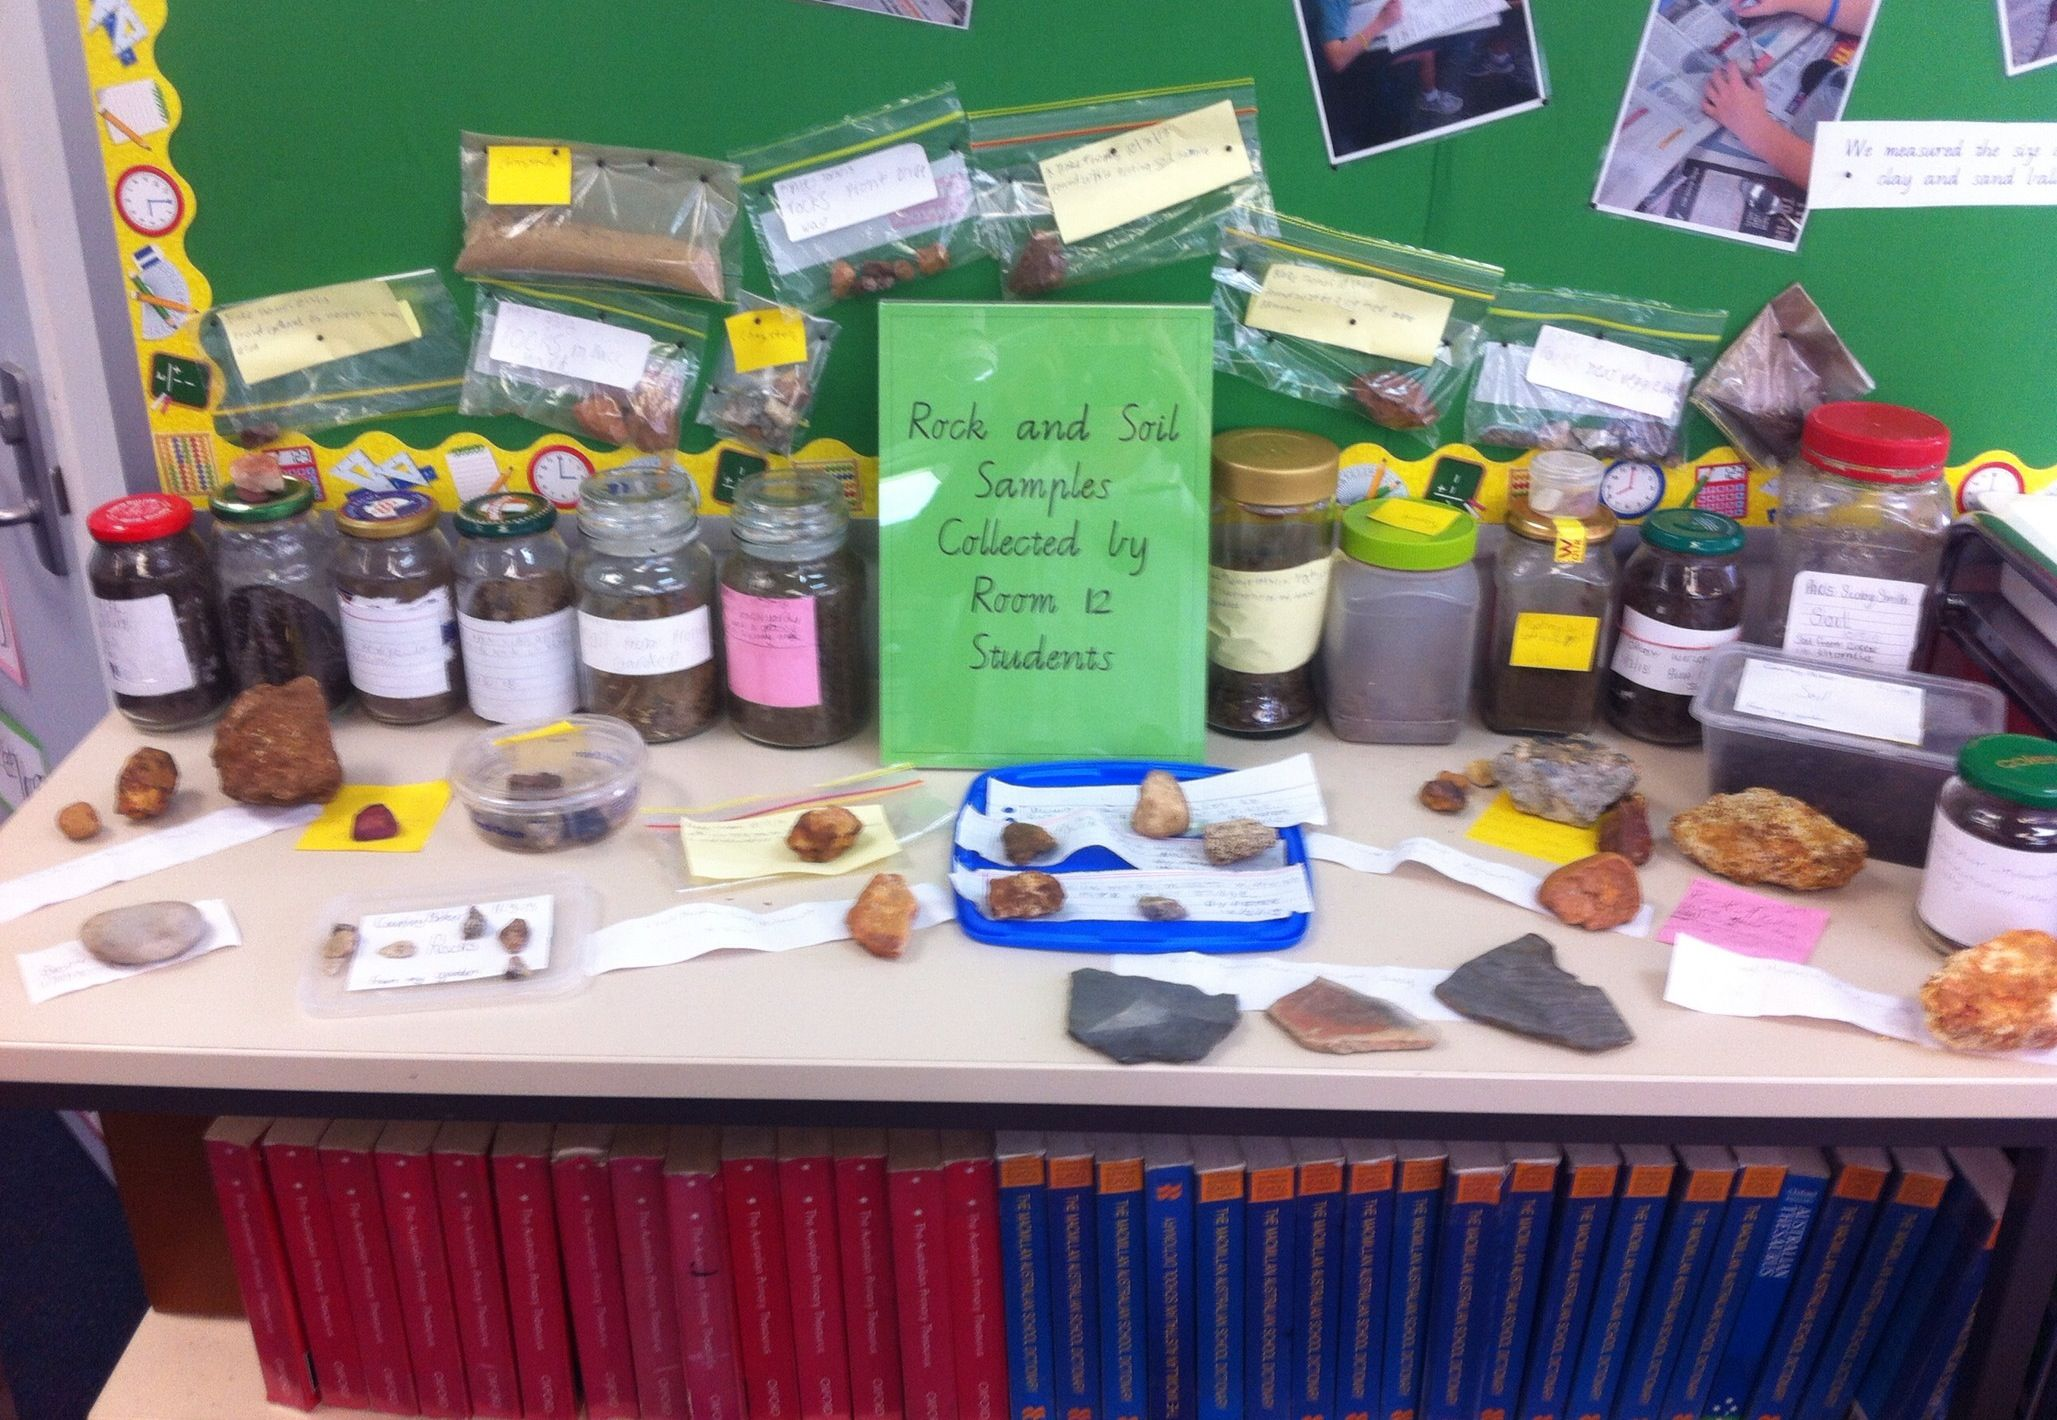 Get The Kids To Bring In Rock And Soil Samples To Explore